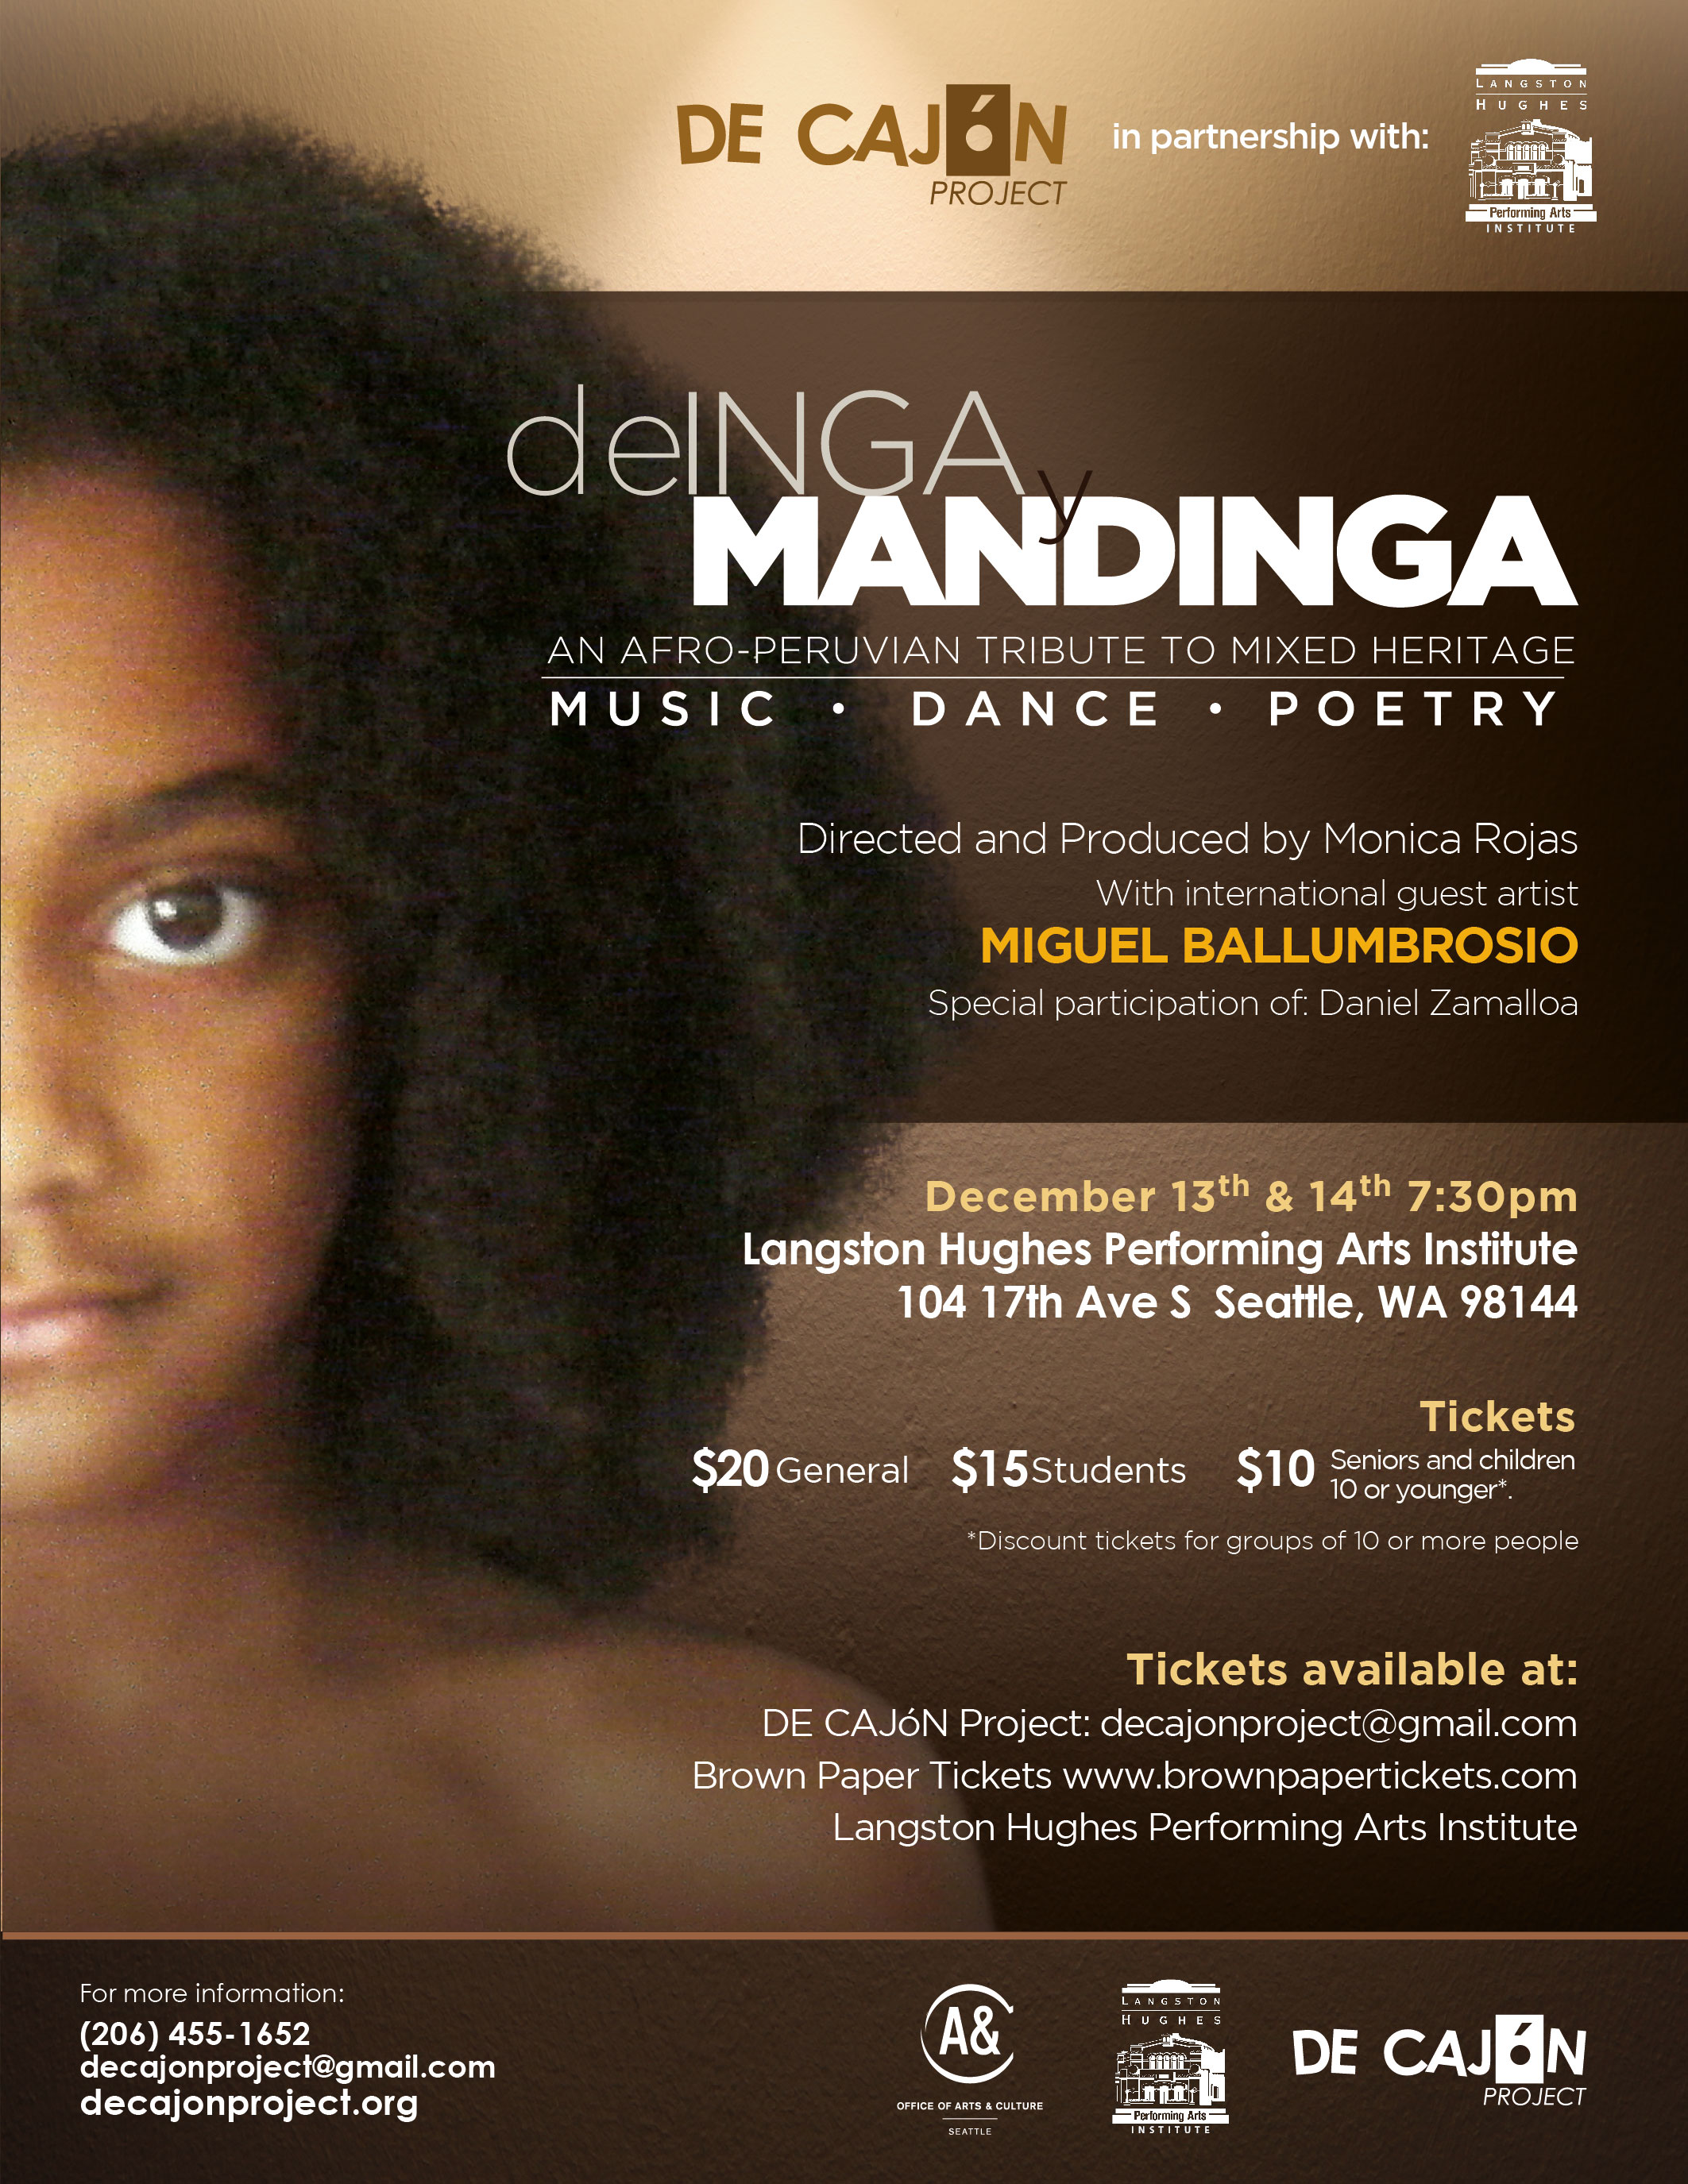 DE INGA Y MANDINGA: An Afro-Peruvian Tribute to Mixed Heritage @ Langston Hughes Performing Arts Institute | Seattle | Washington | United States